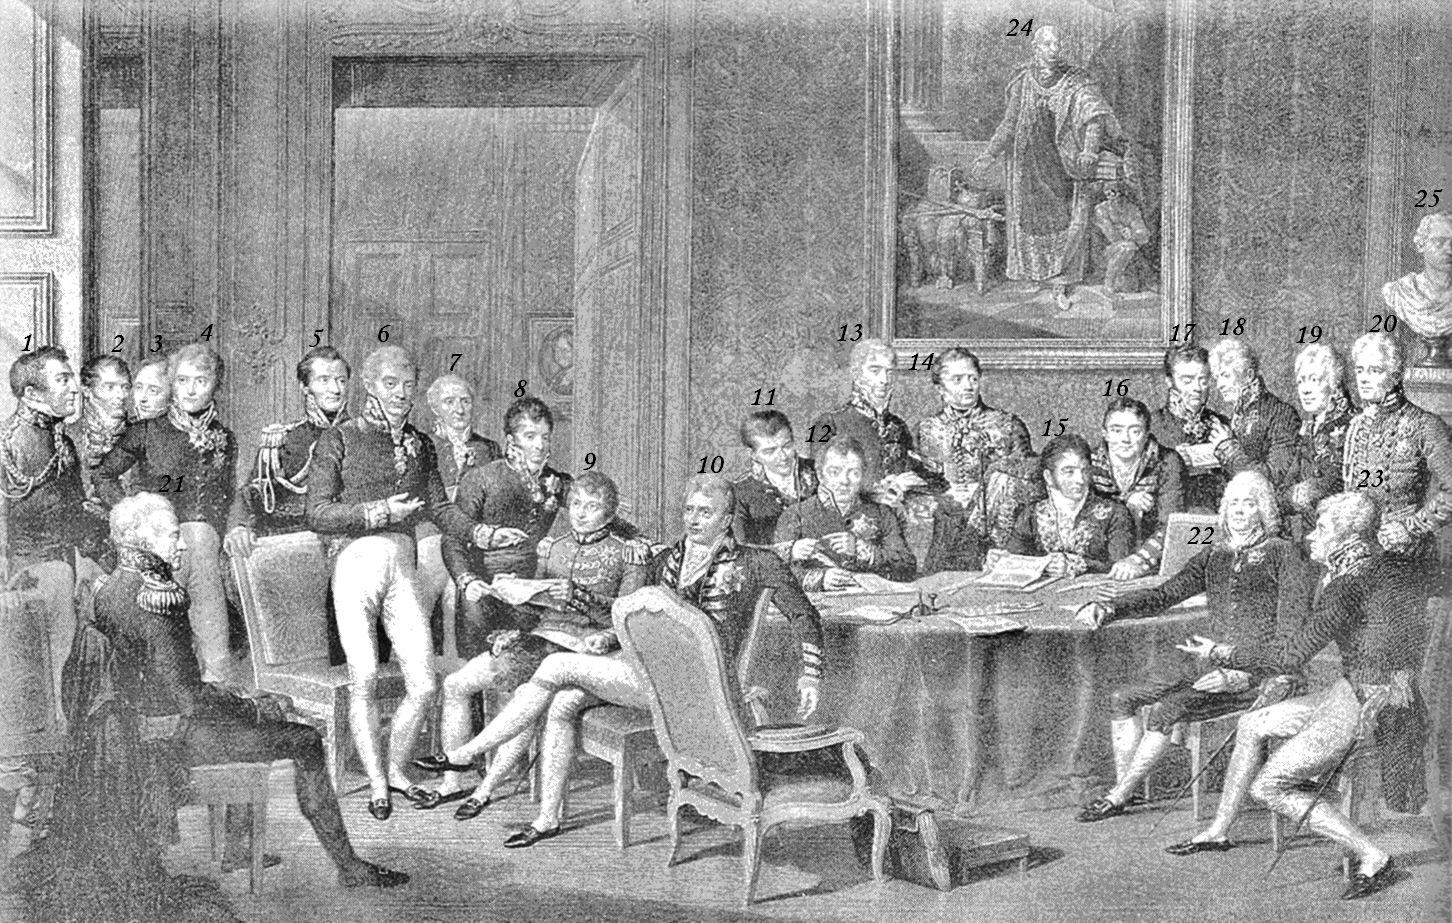 Jan Losenicky: The Congress of Vienna